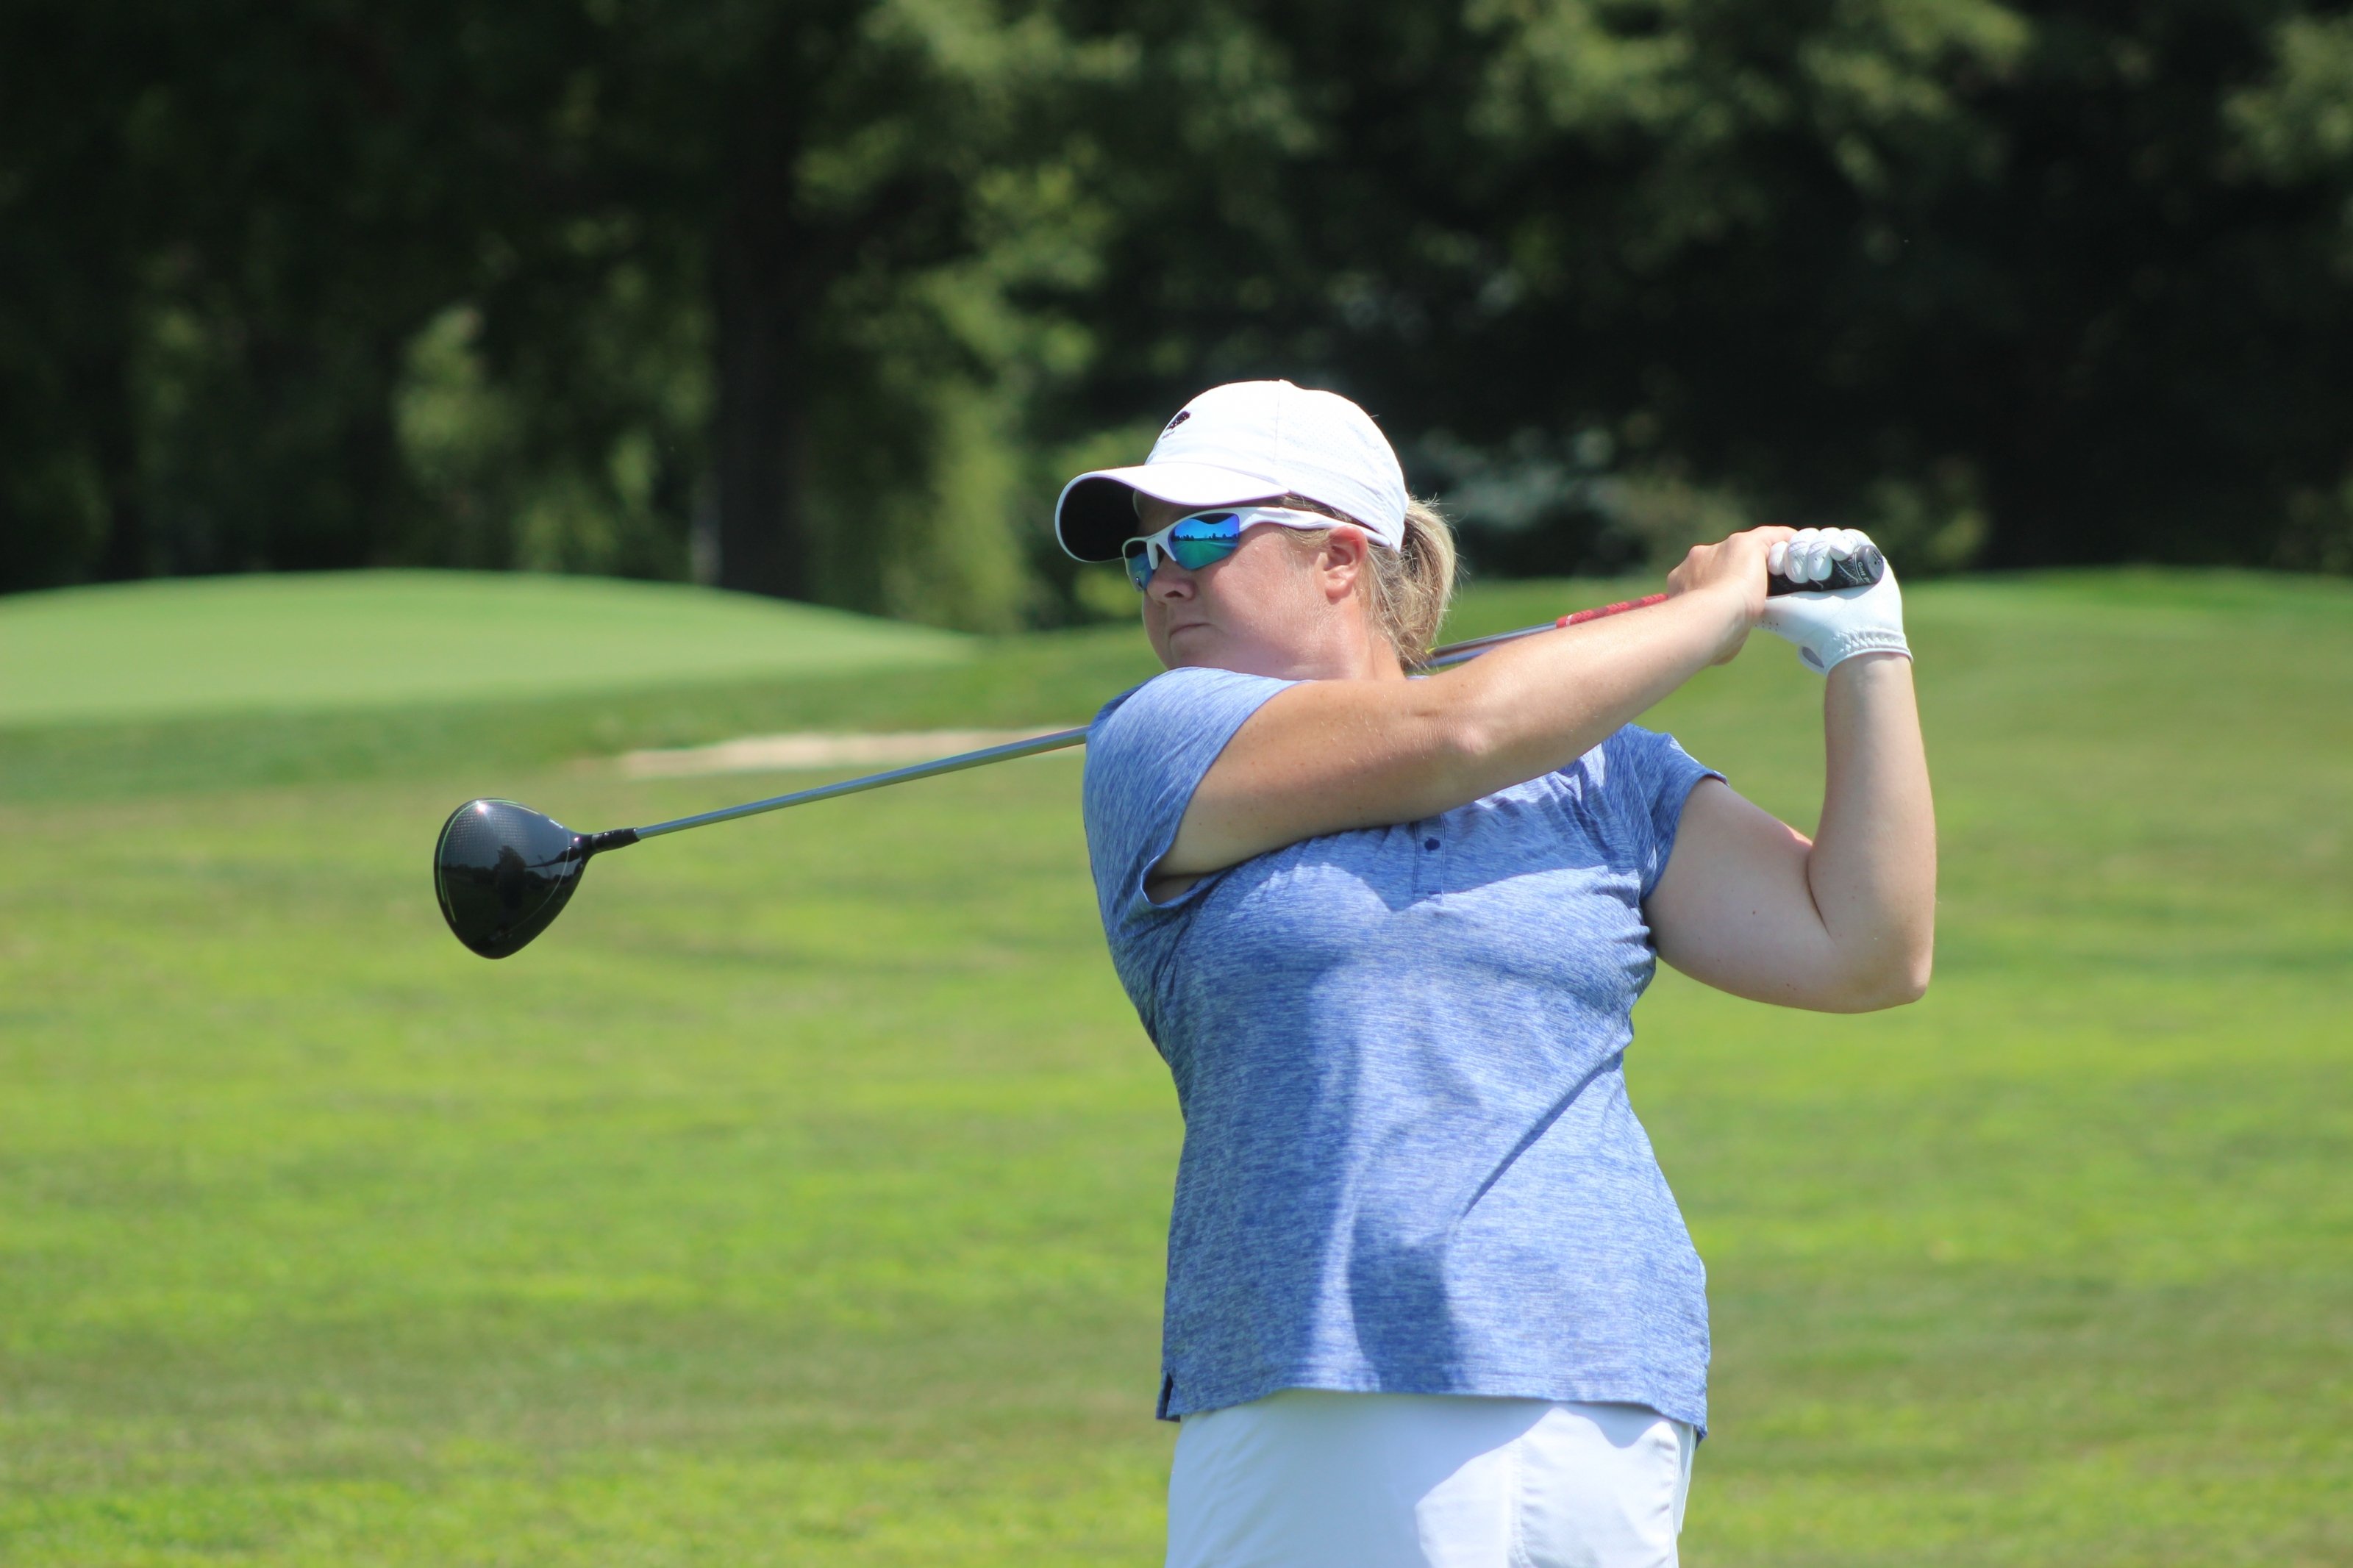 Indiana's Brittany Kelly Makes Inaugural Women's PGA Cup Team Roster